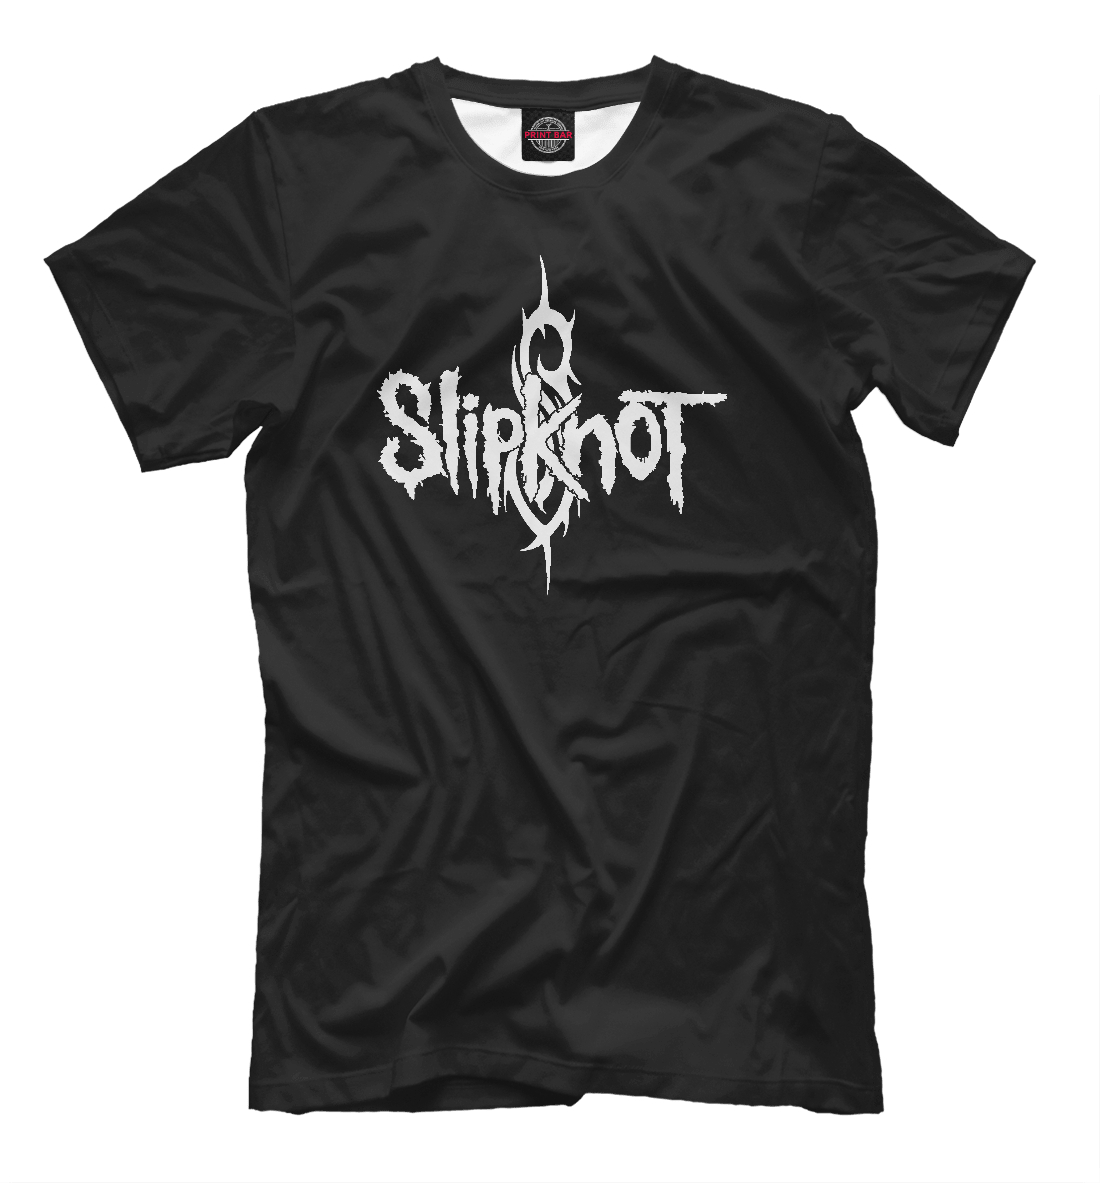 Купить Slipknot, Printbar, Футболки, SLI-947410-fut-2